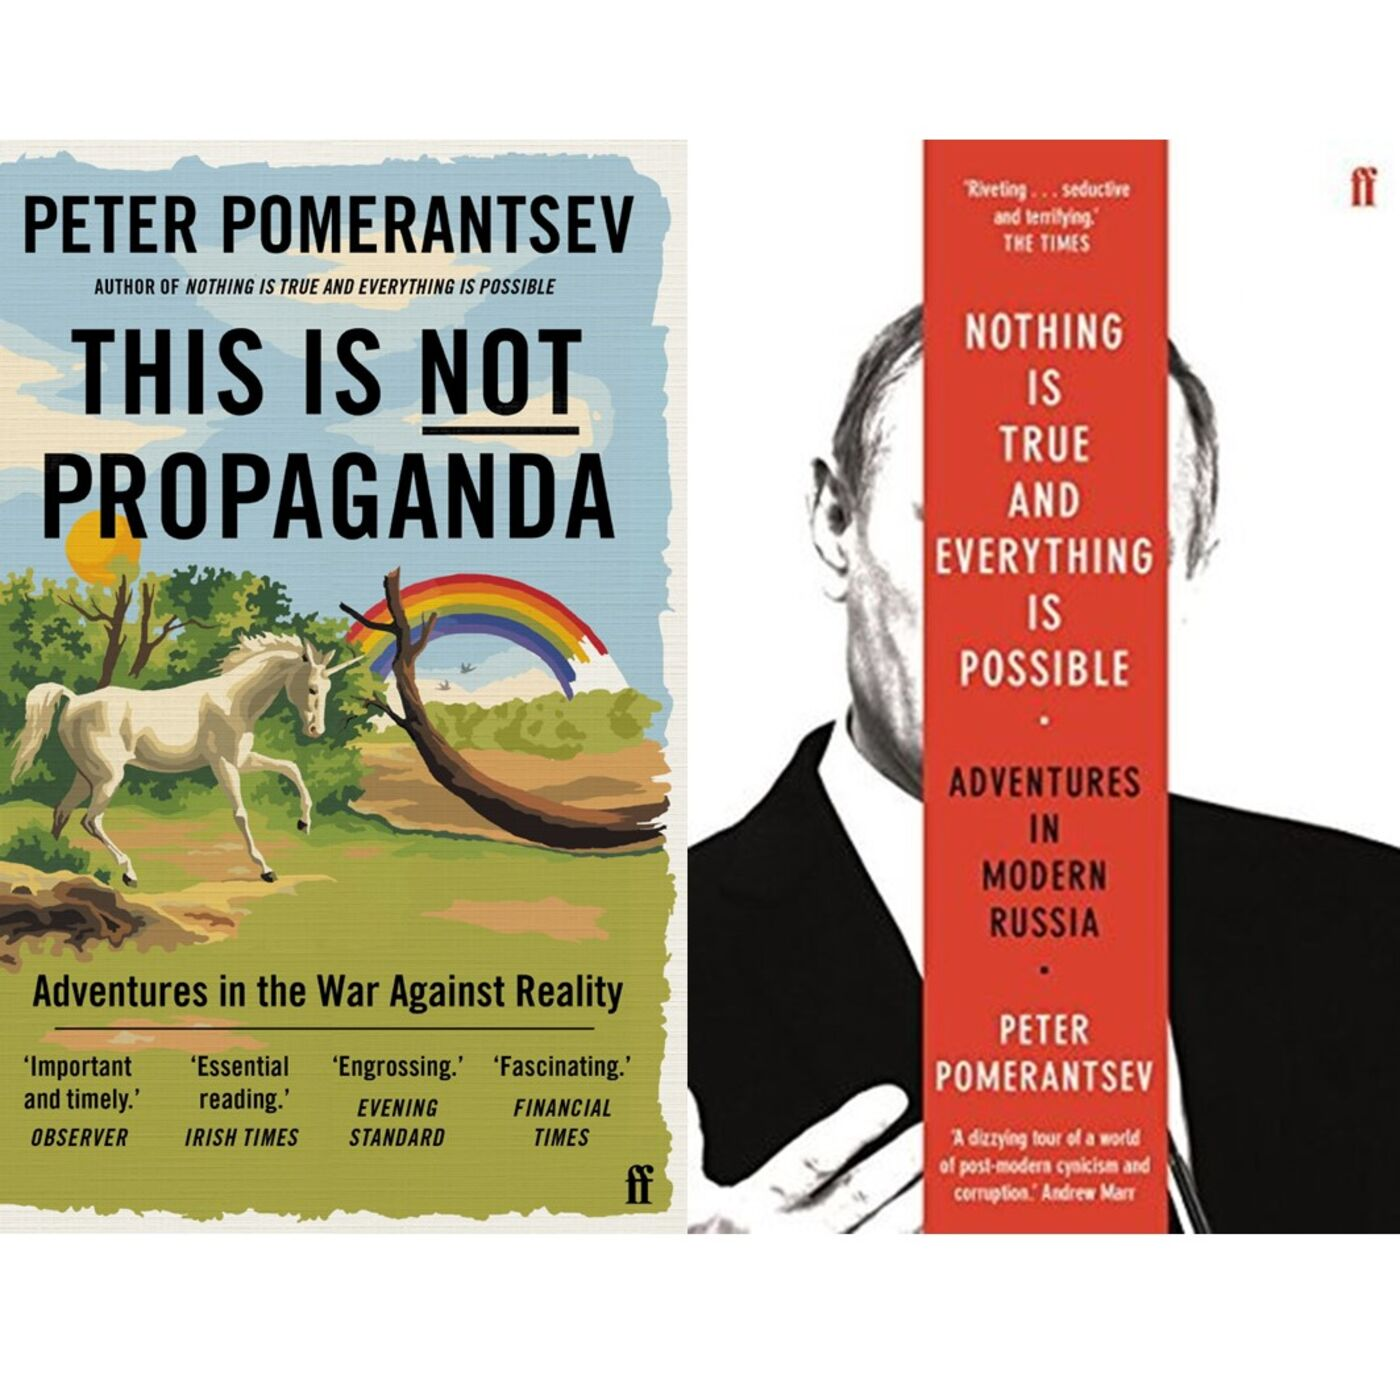 Peter Pomerantsev has stories to tell (and they are all true)